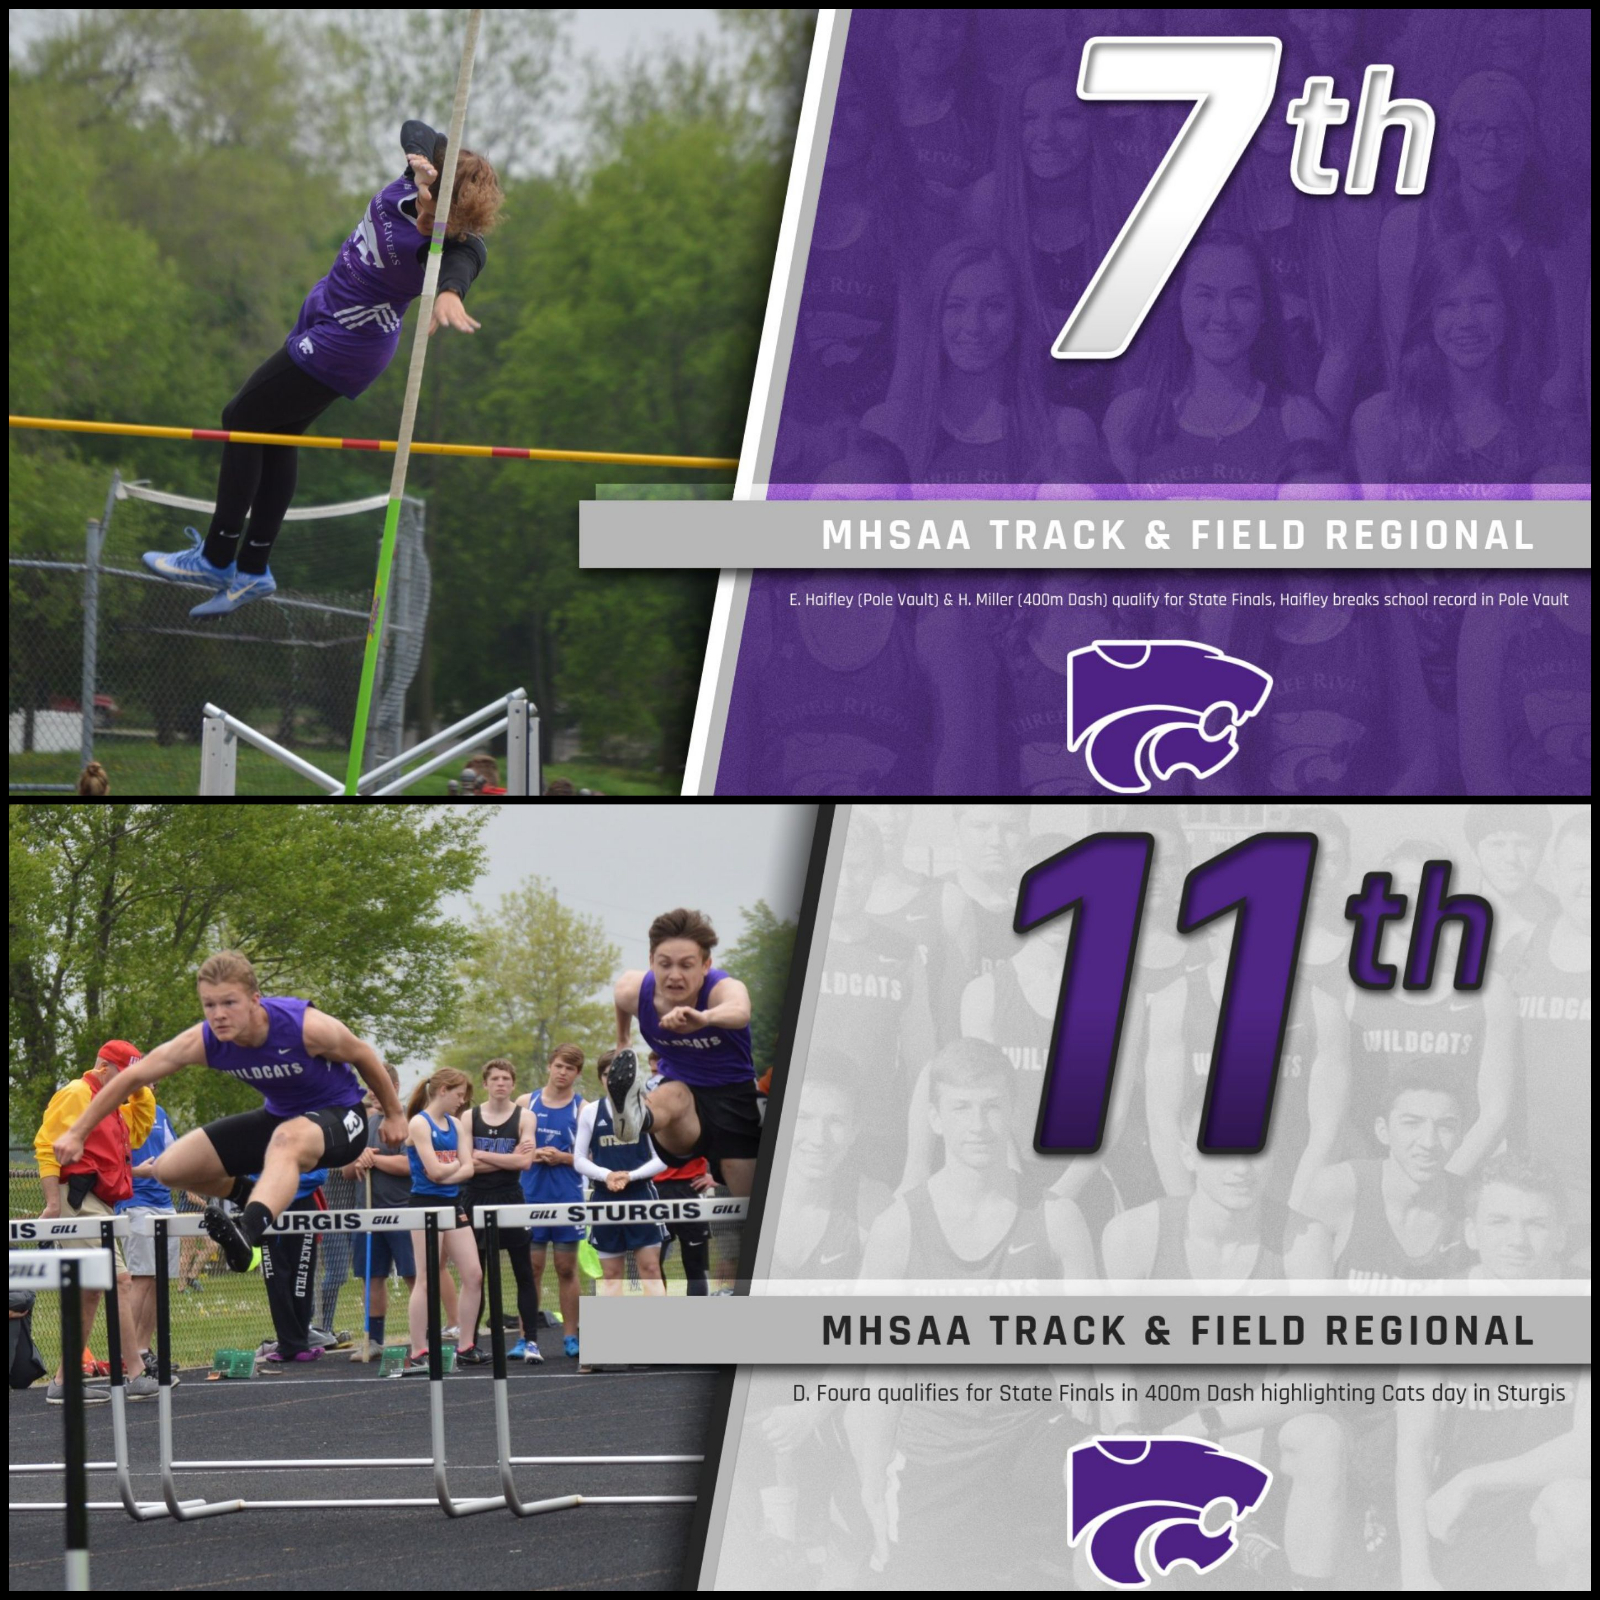 Track & Field: Foura, Haifley, Miller qualify for State Finals; Haifley breaks school record in pole vault